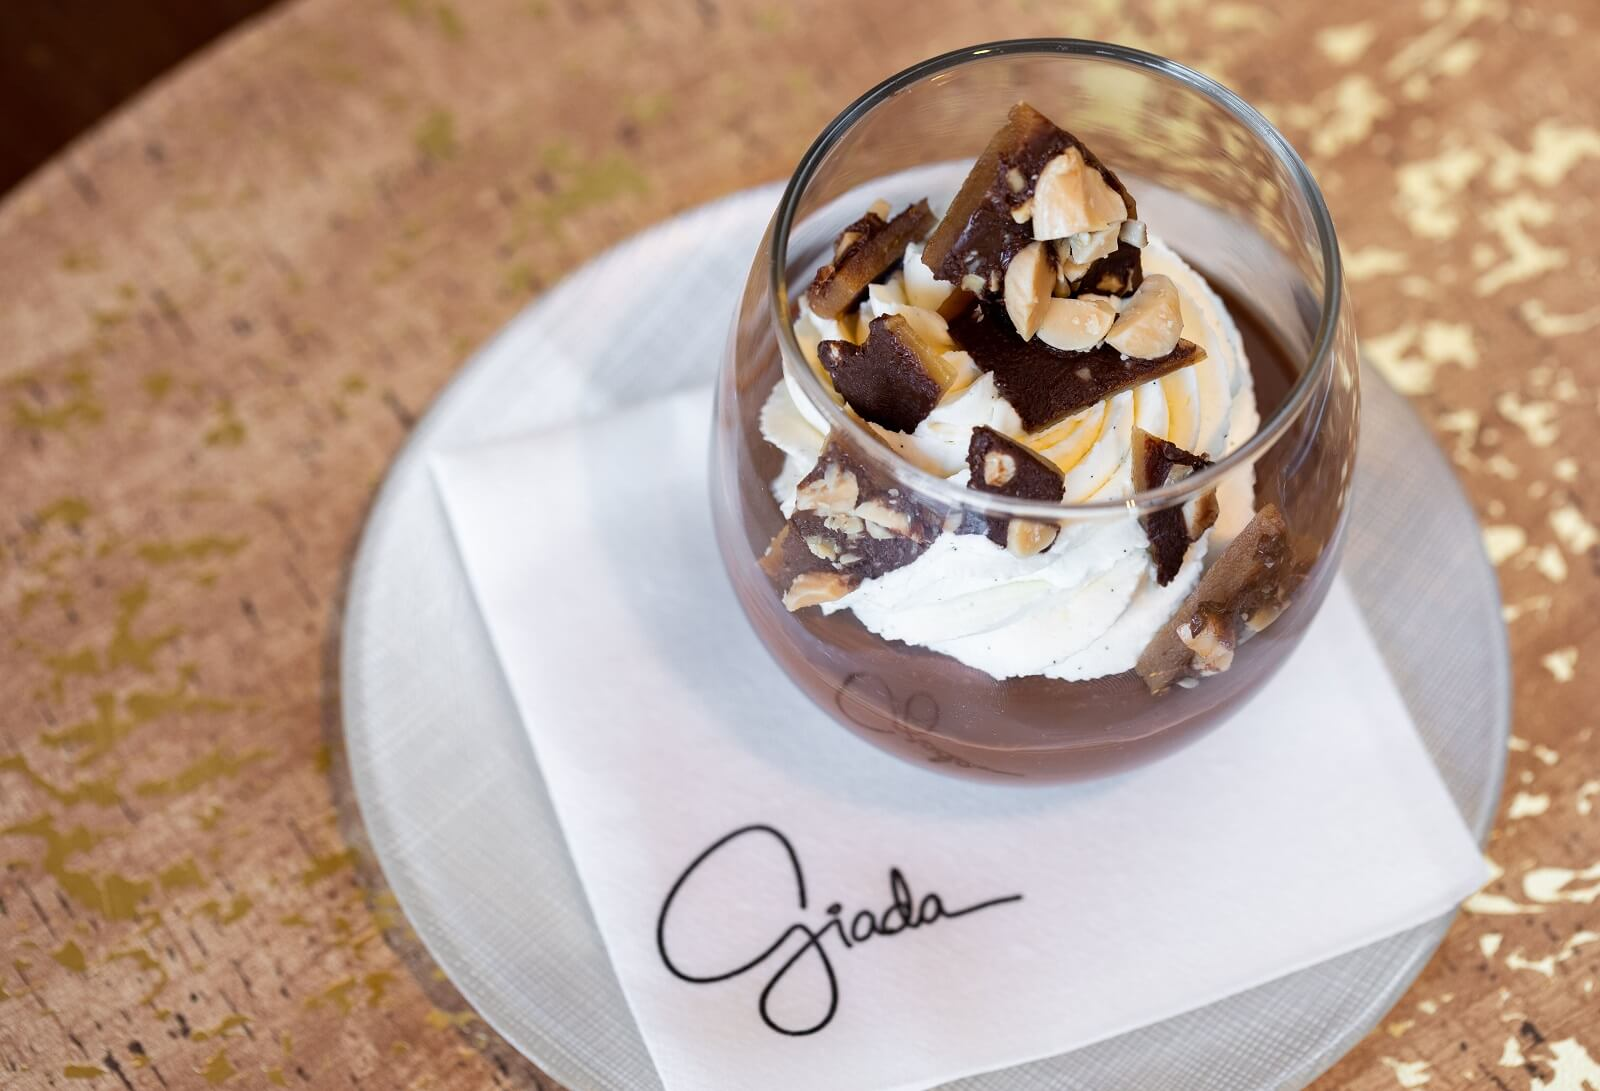 GIADA Book Club Brunch Tasting Menu Chocolate Budino with Amaretto Whipped Cream Las Vegas Brunch